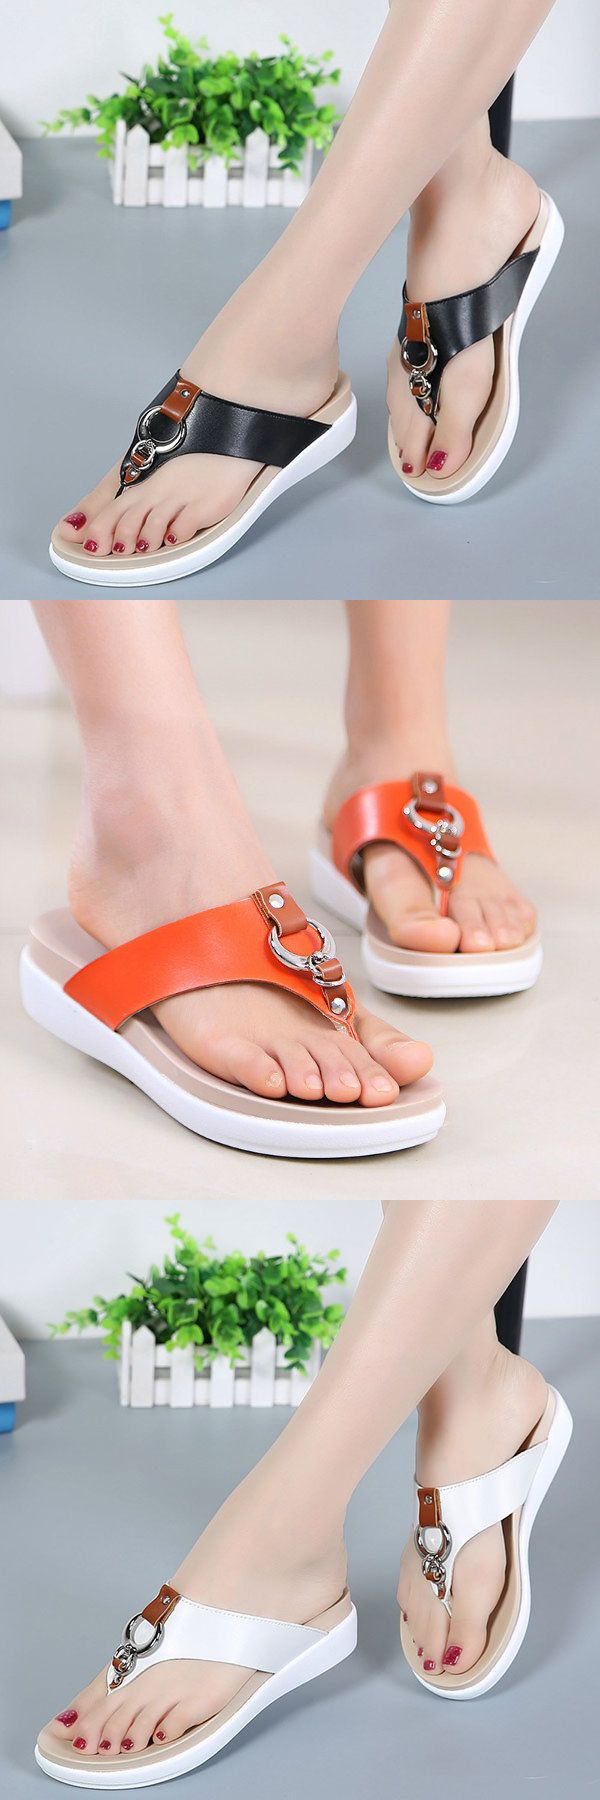 US$19.77 Shoes_Womens Sandals_Black Sandals_Summer Outfits